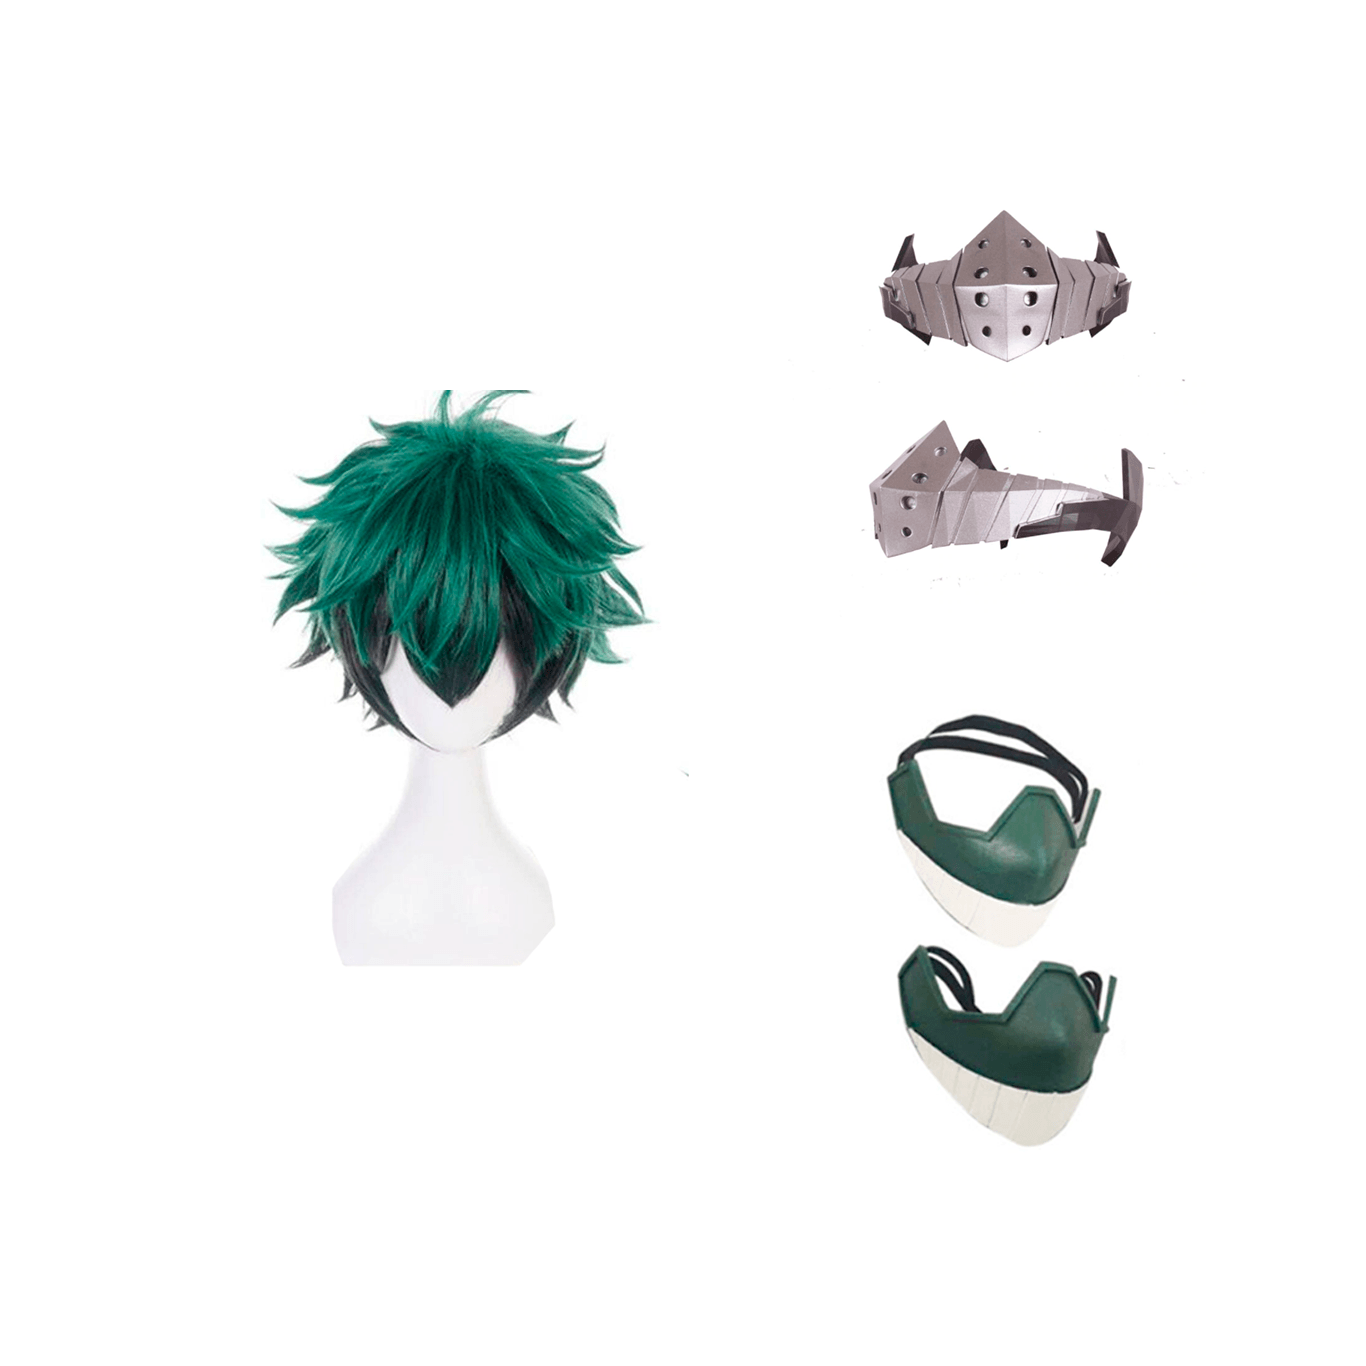 Kit cosplay Izuku Midoriya, Boku no Hero Academia